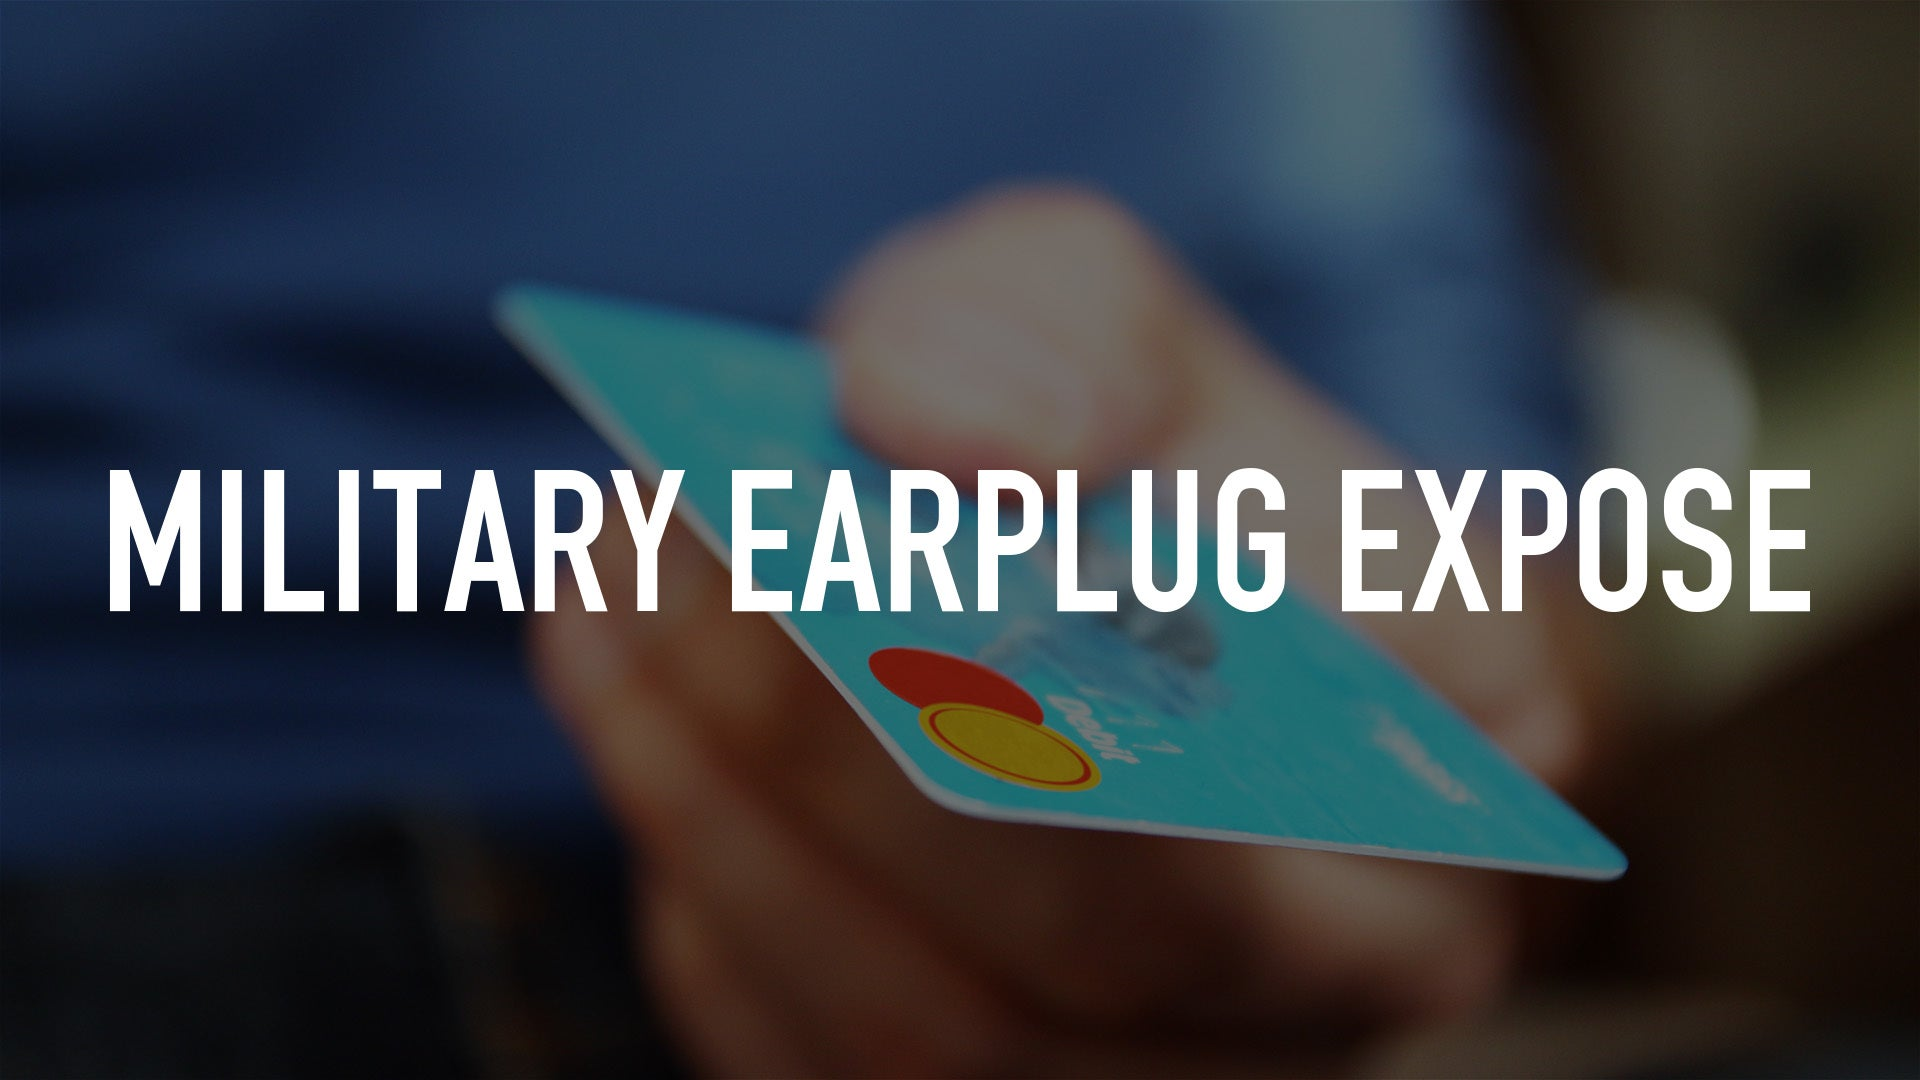 Military Earplug Expose